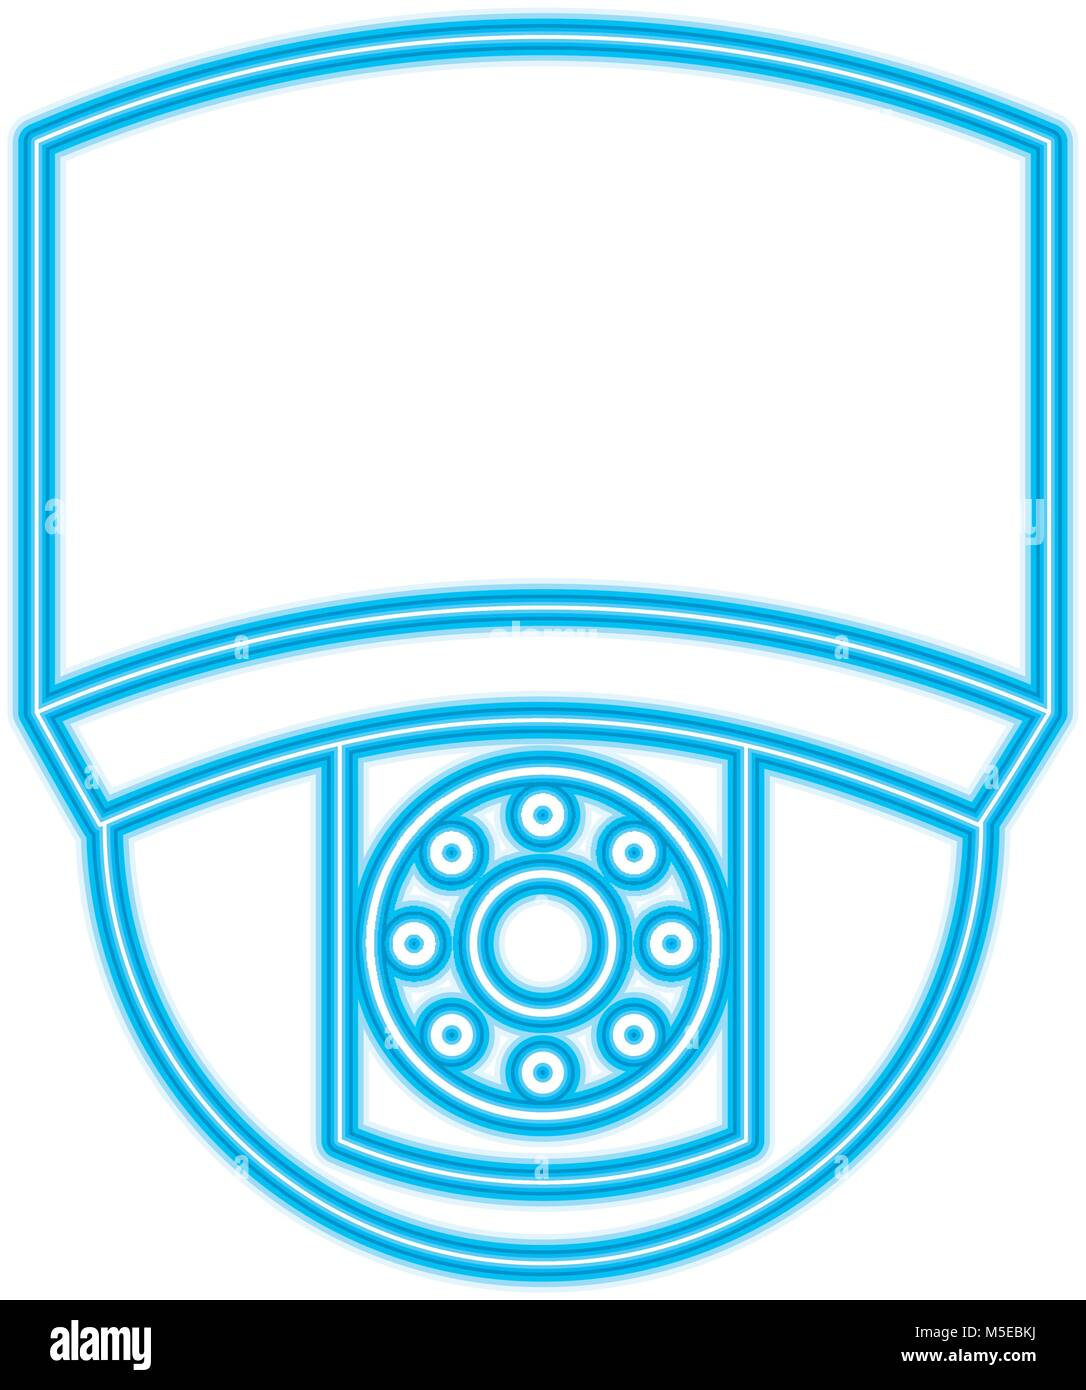 ceiling surveillance camera security technology - Stock Image